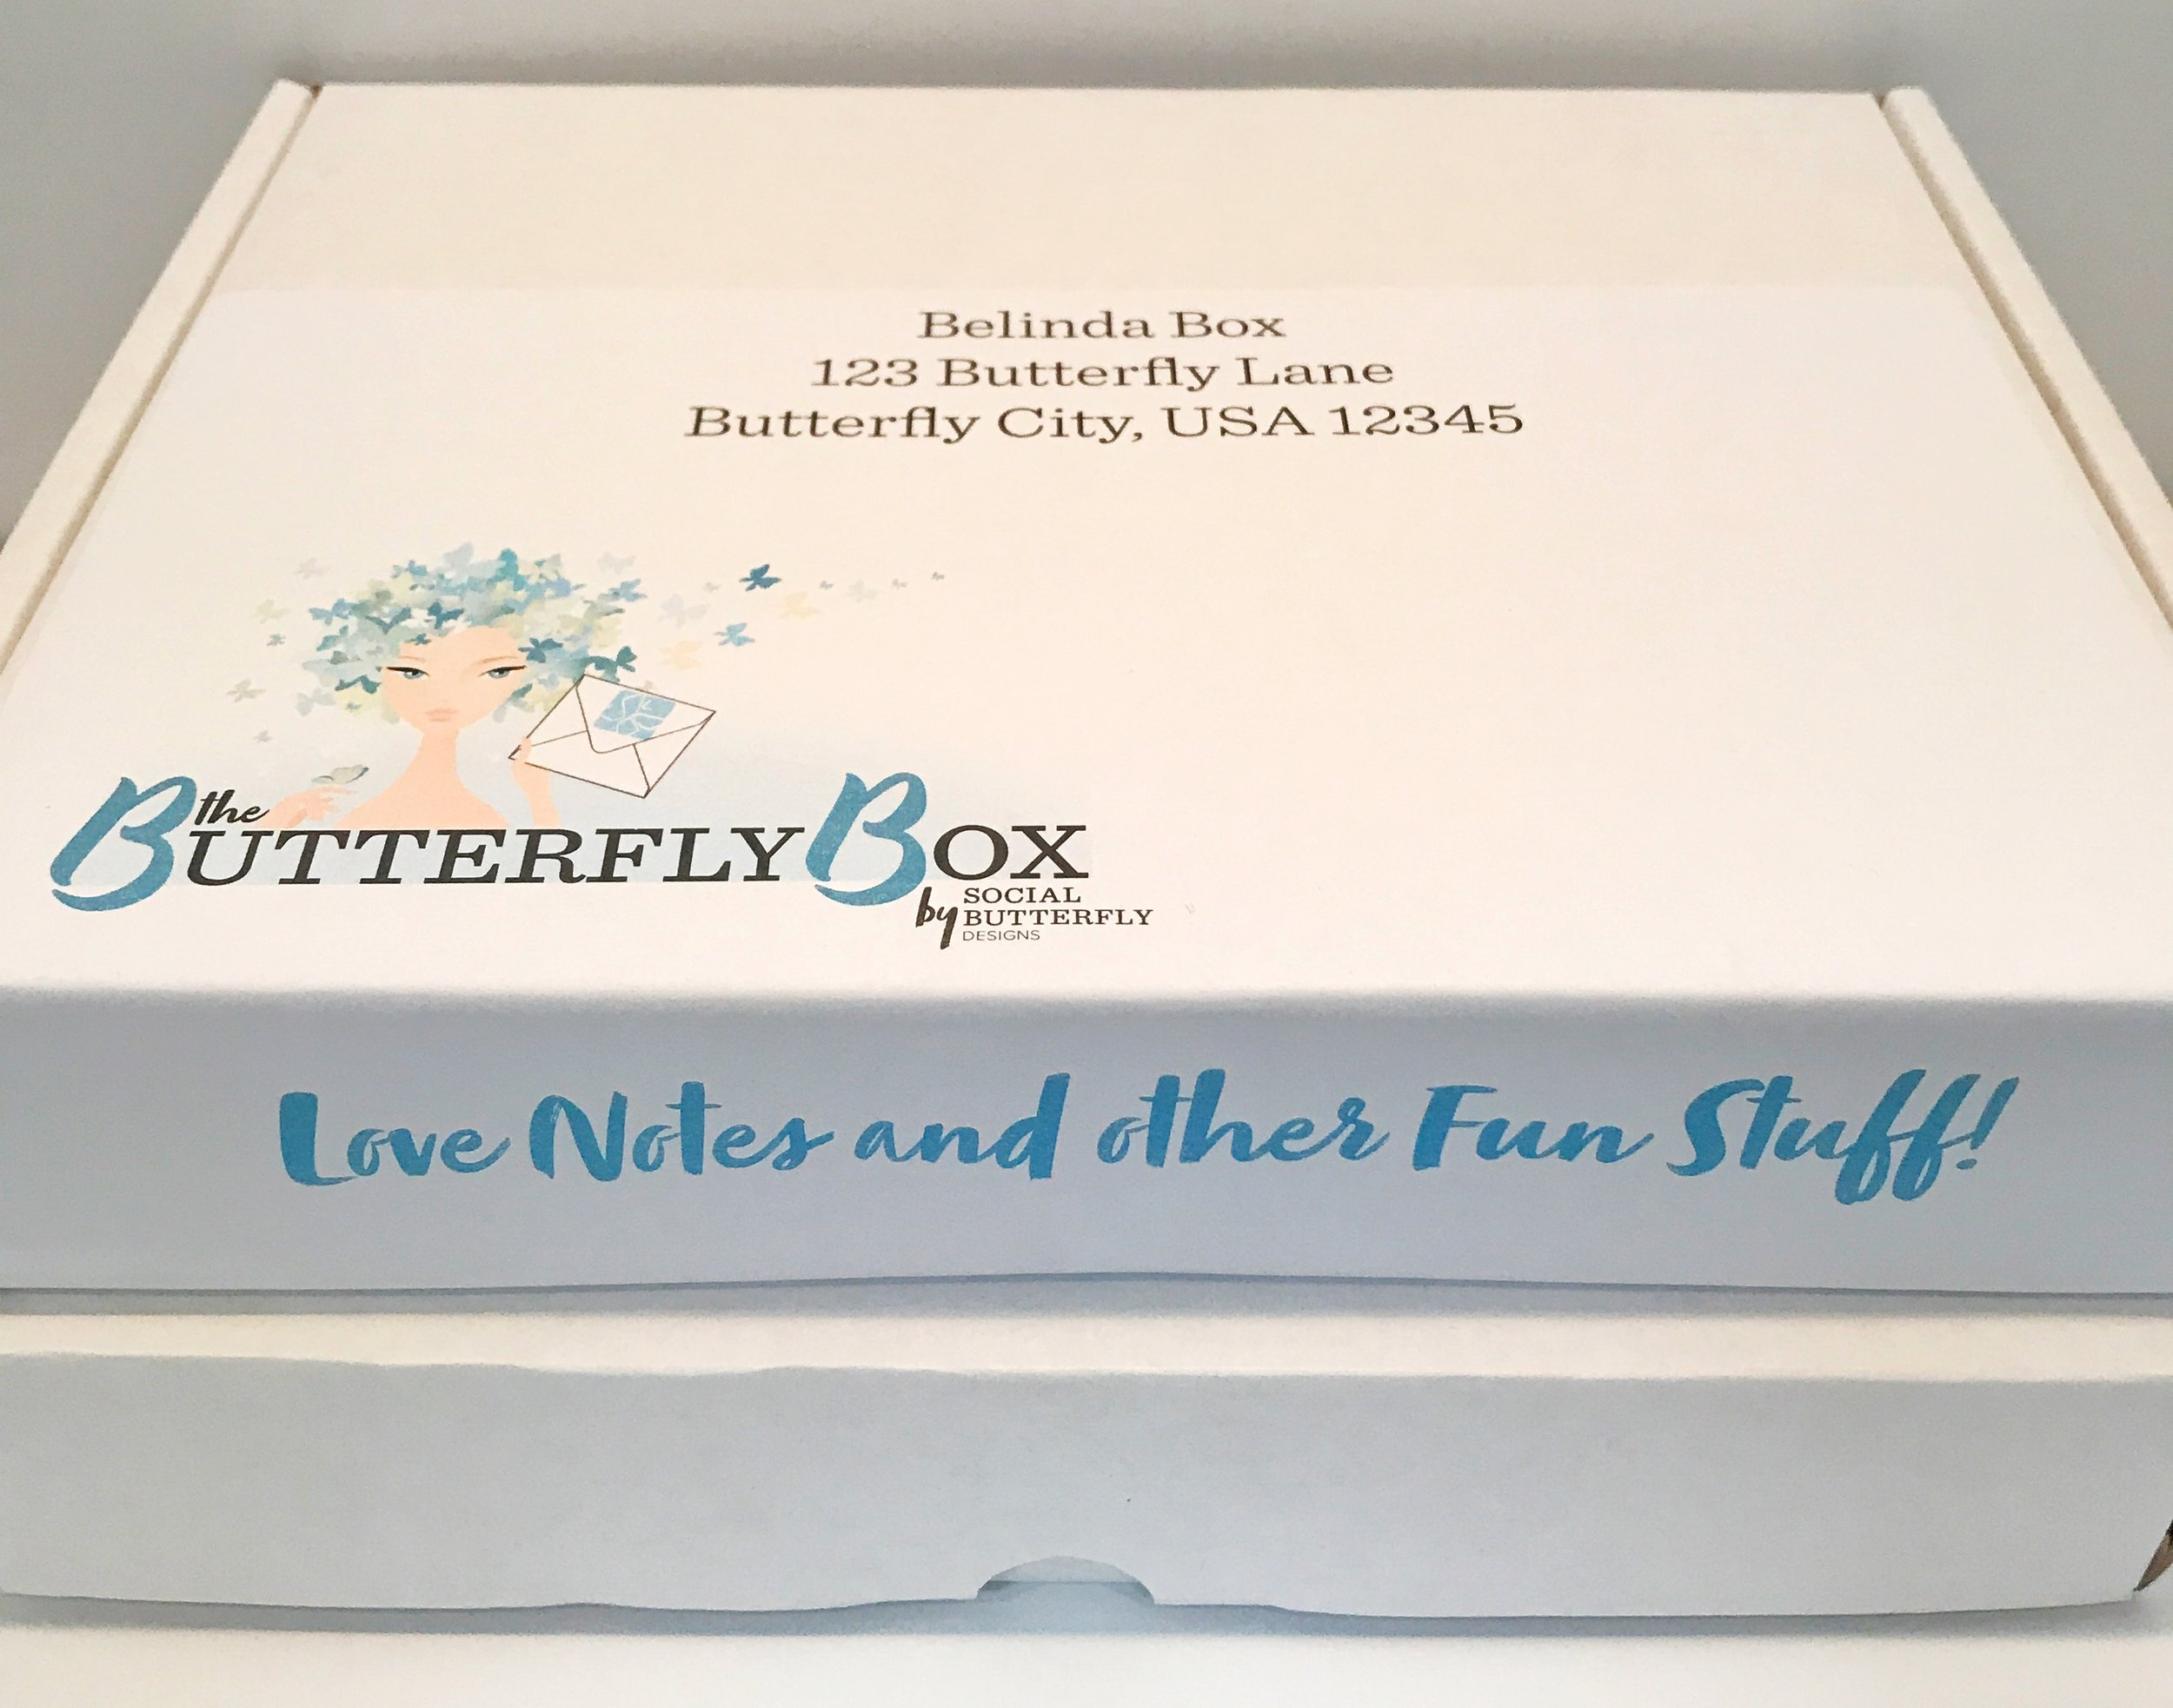 The Butterfly Box  - Full Year/4 Boxes Delivered QuarterlyWinter/Spring/Summer/Fall5 greeting cards + one pack of 8 notecards + at least 2 awesome lifestyle items + Stamps $240 Value for $195 (single payment, includes shipping) or $49 for single boxBest Deal....Save $45!